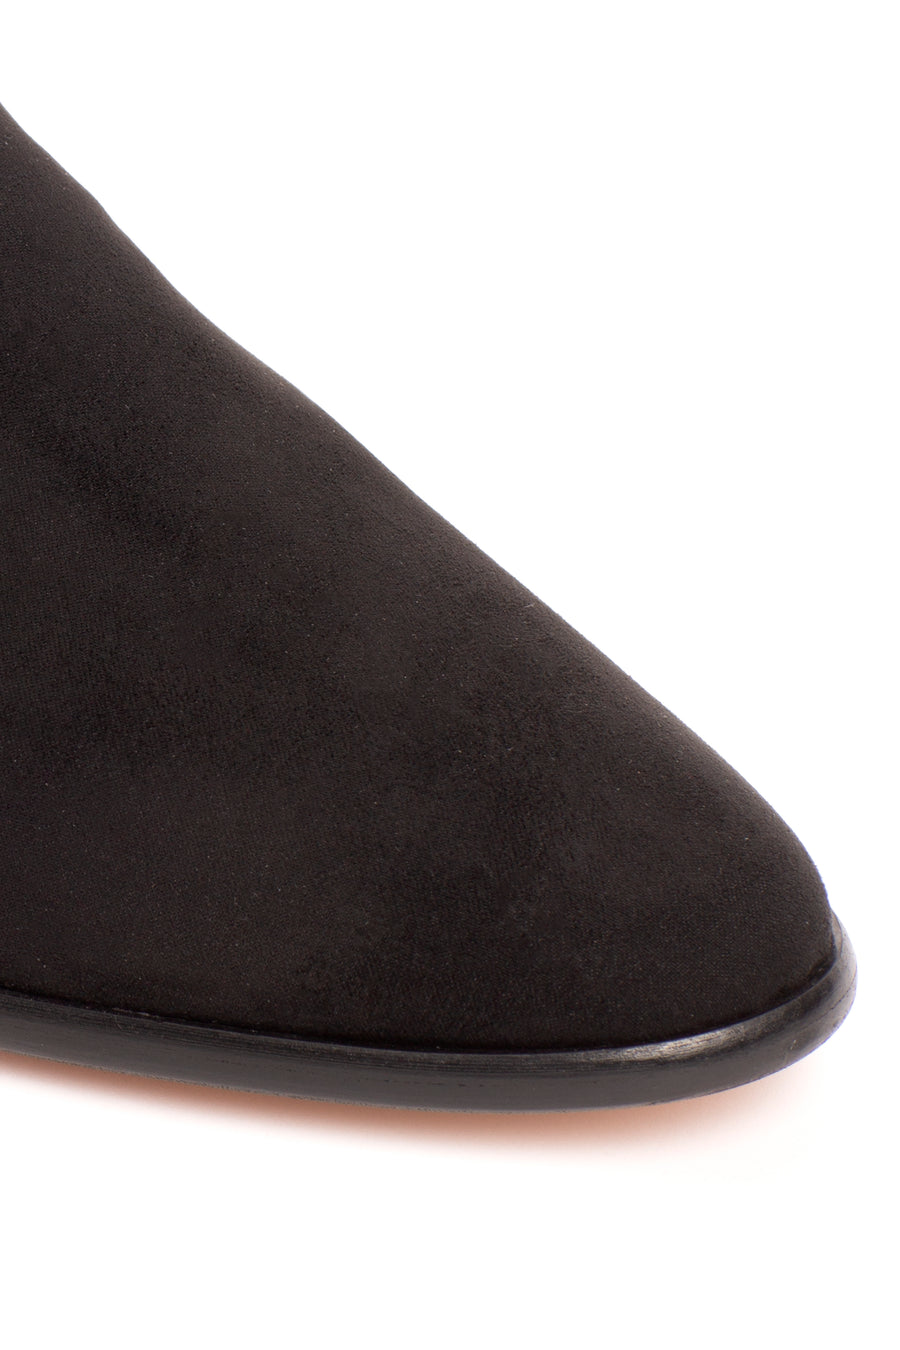 Tina Black Suede-Effect Vegan Loafers